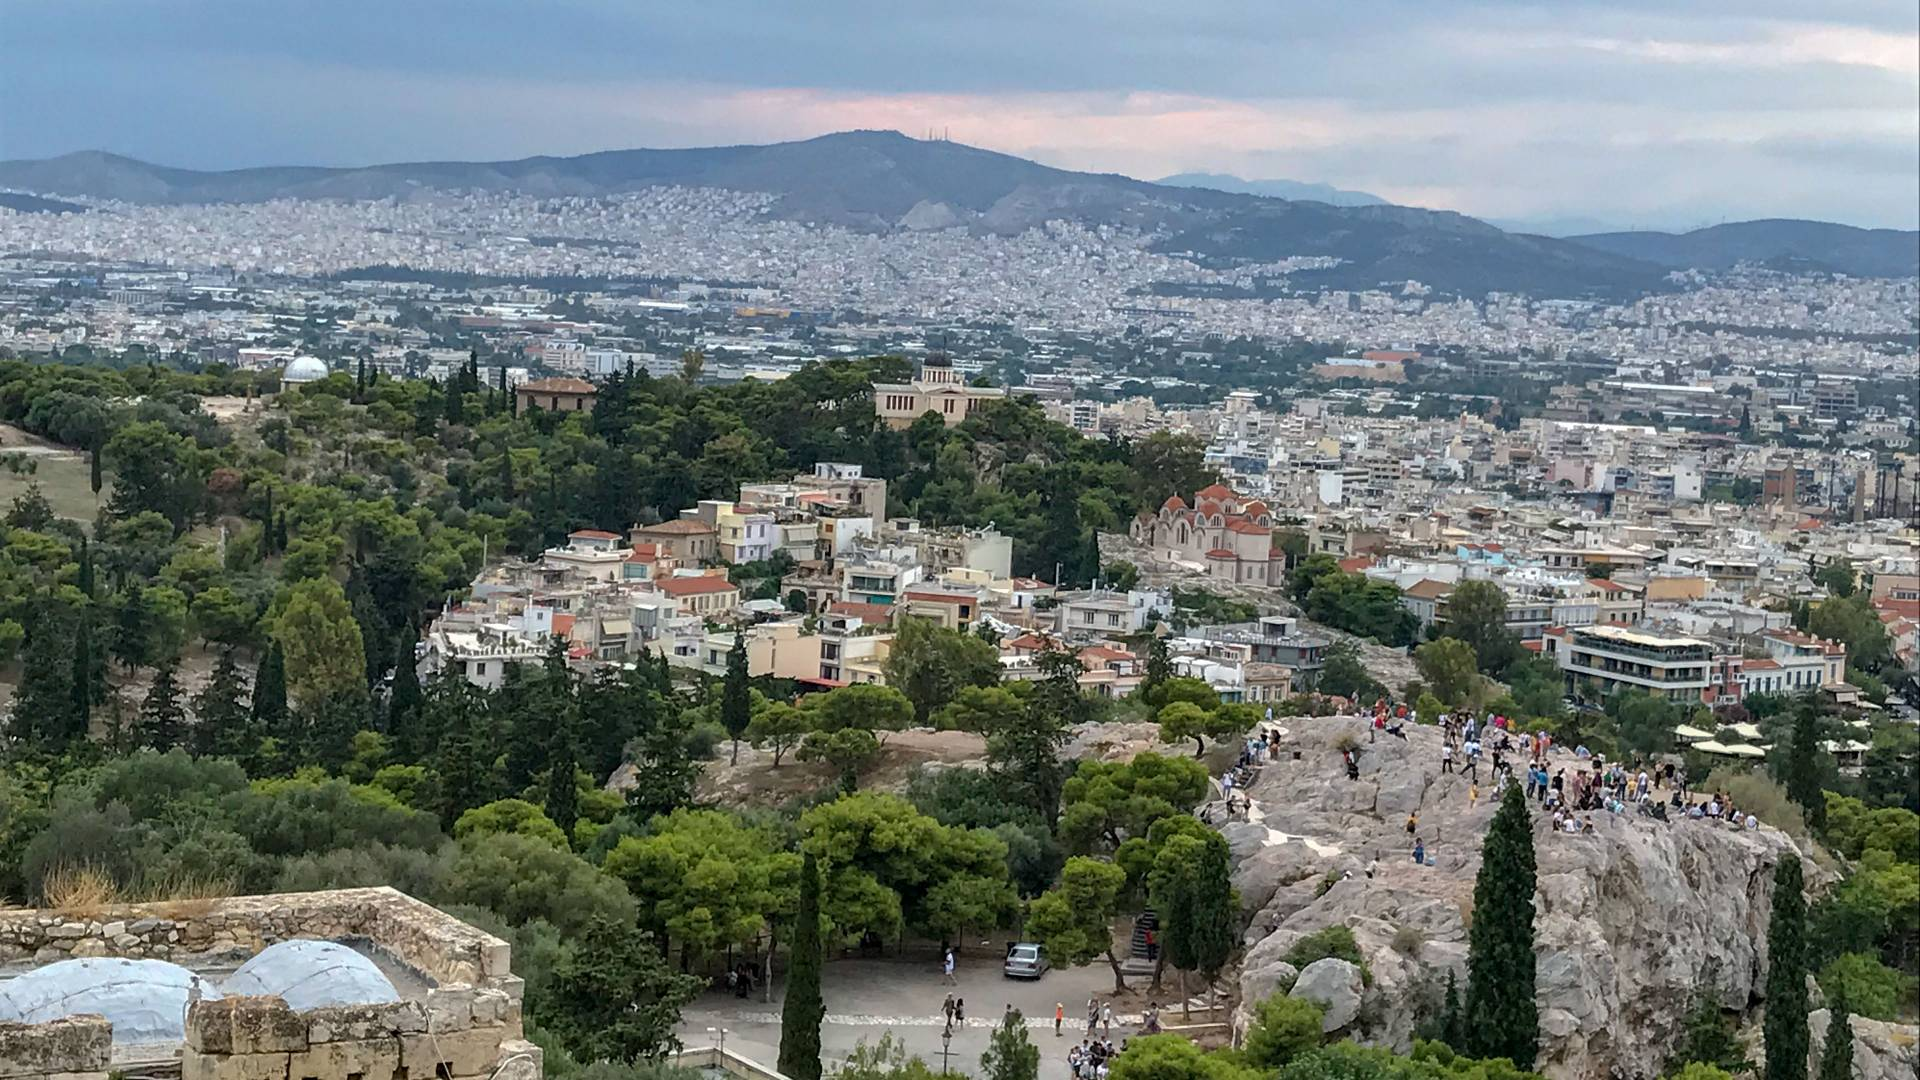 Vista of Athens, Greece